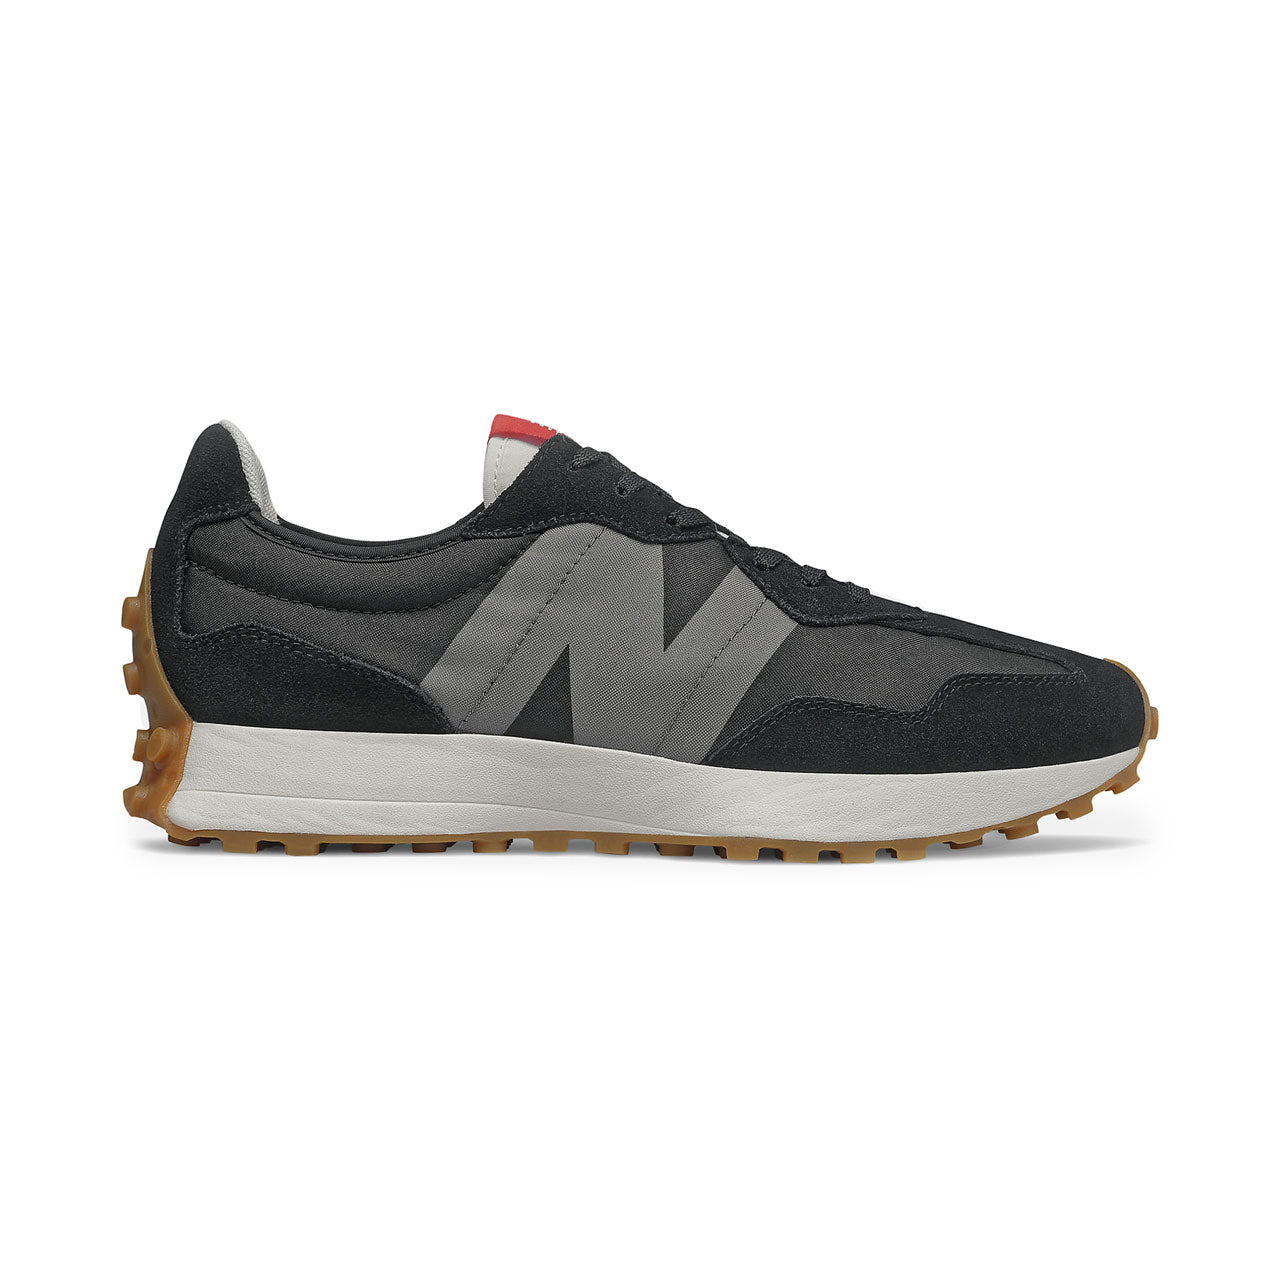 New Balance 327 Black Castlerock Sneakers